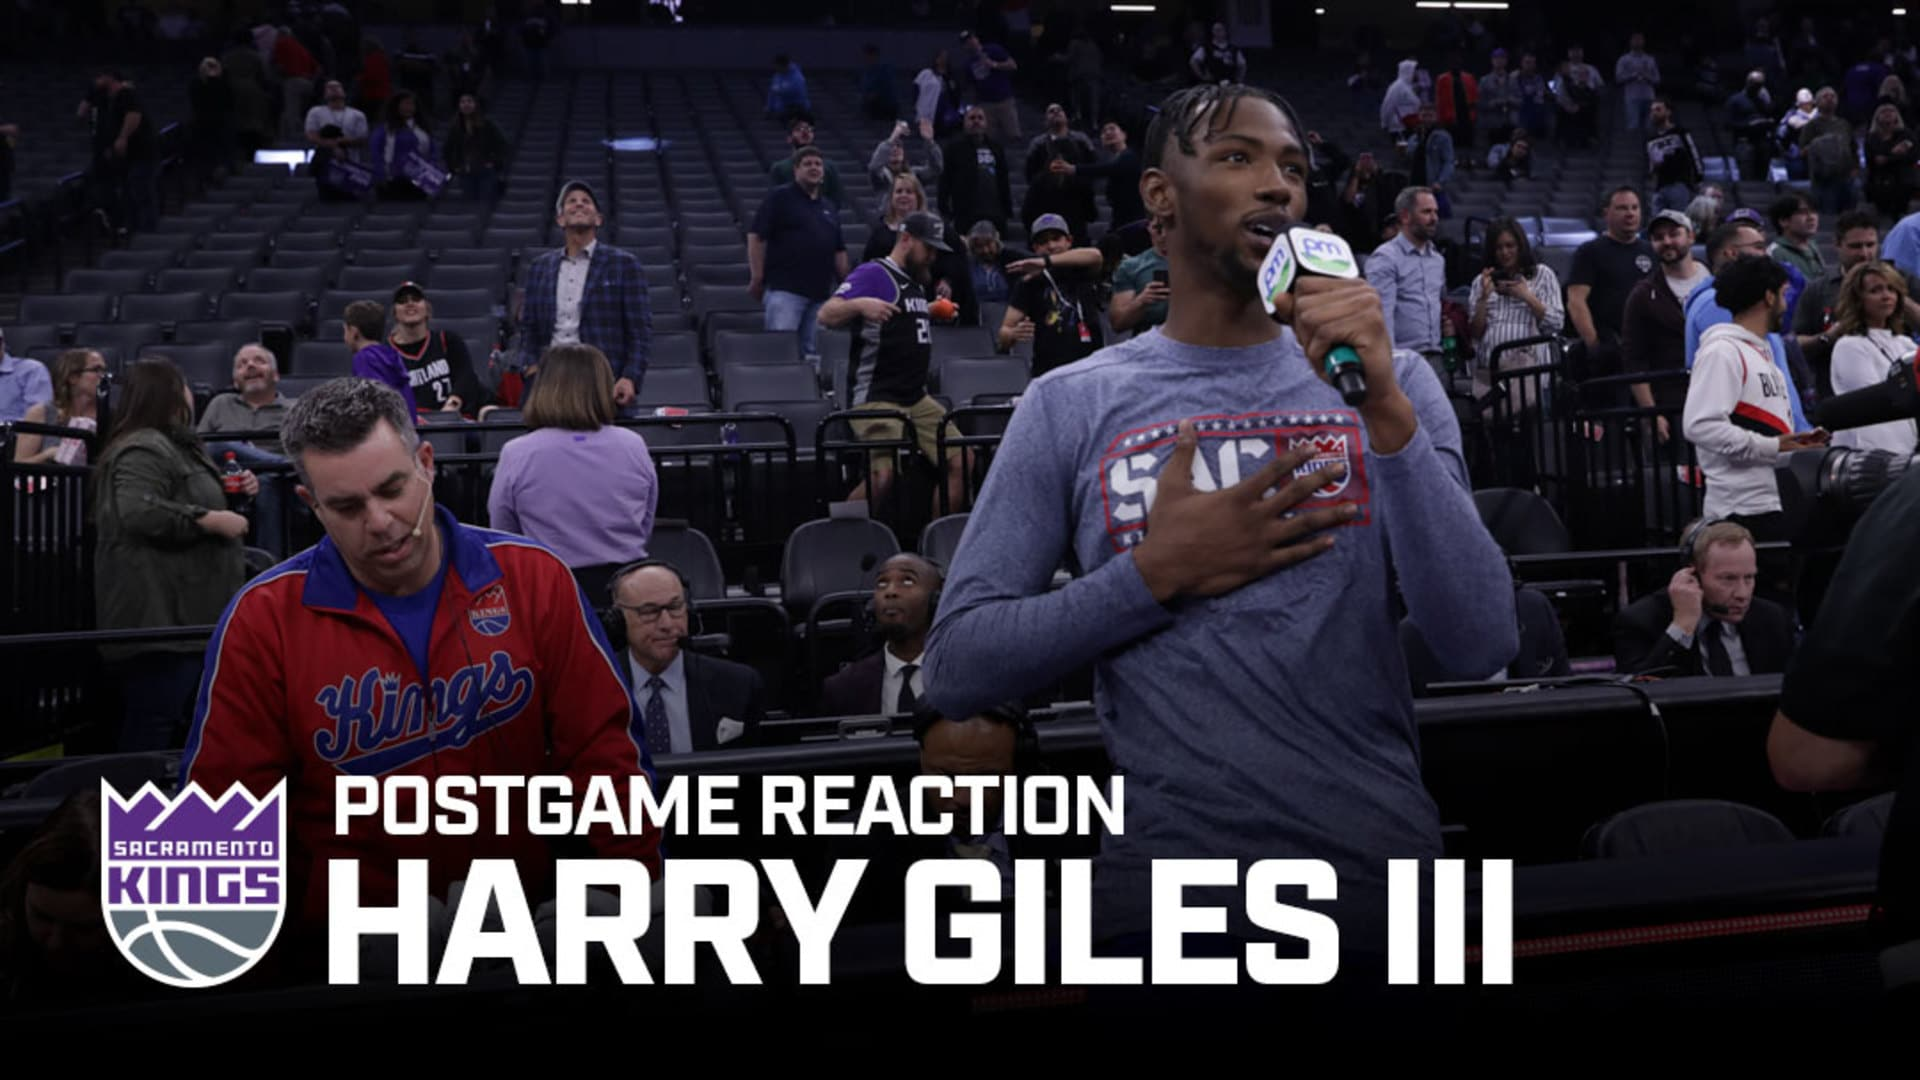 'Sactown love all day!' | Harry Giles III Postgame Reaction 11.12.19